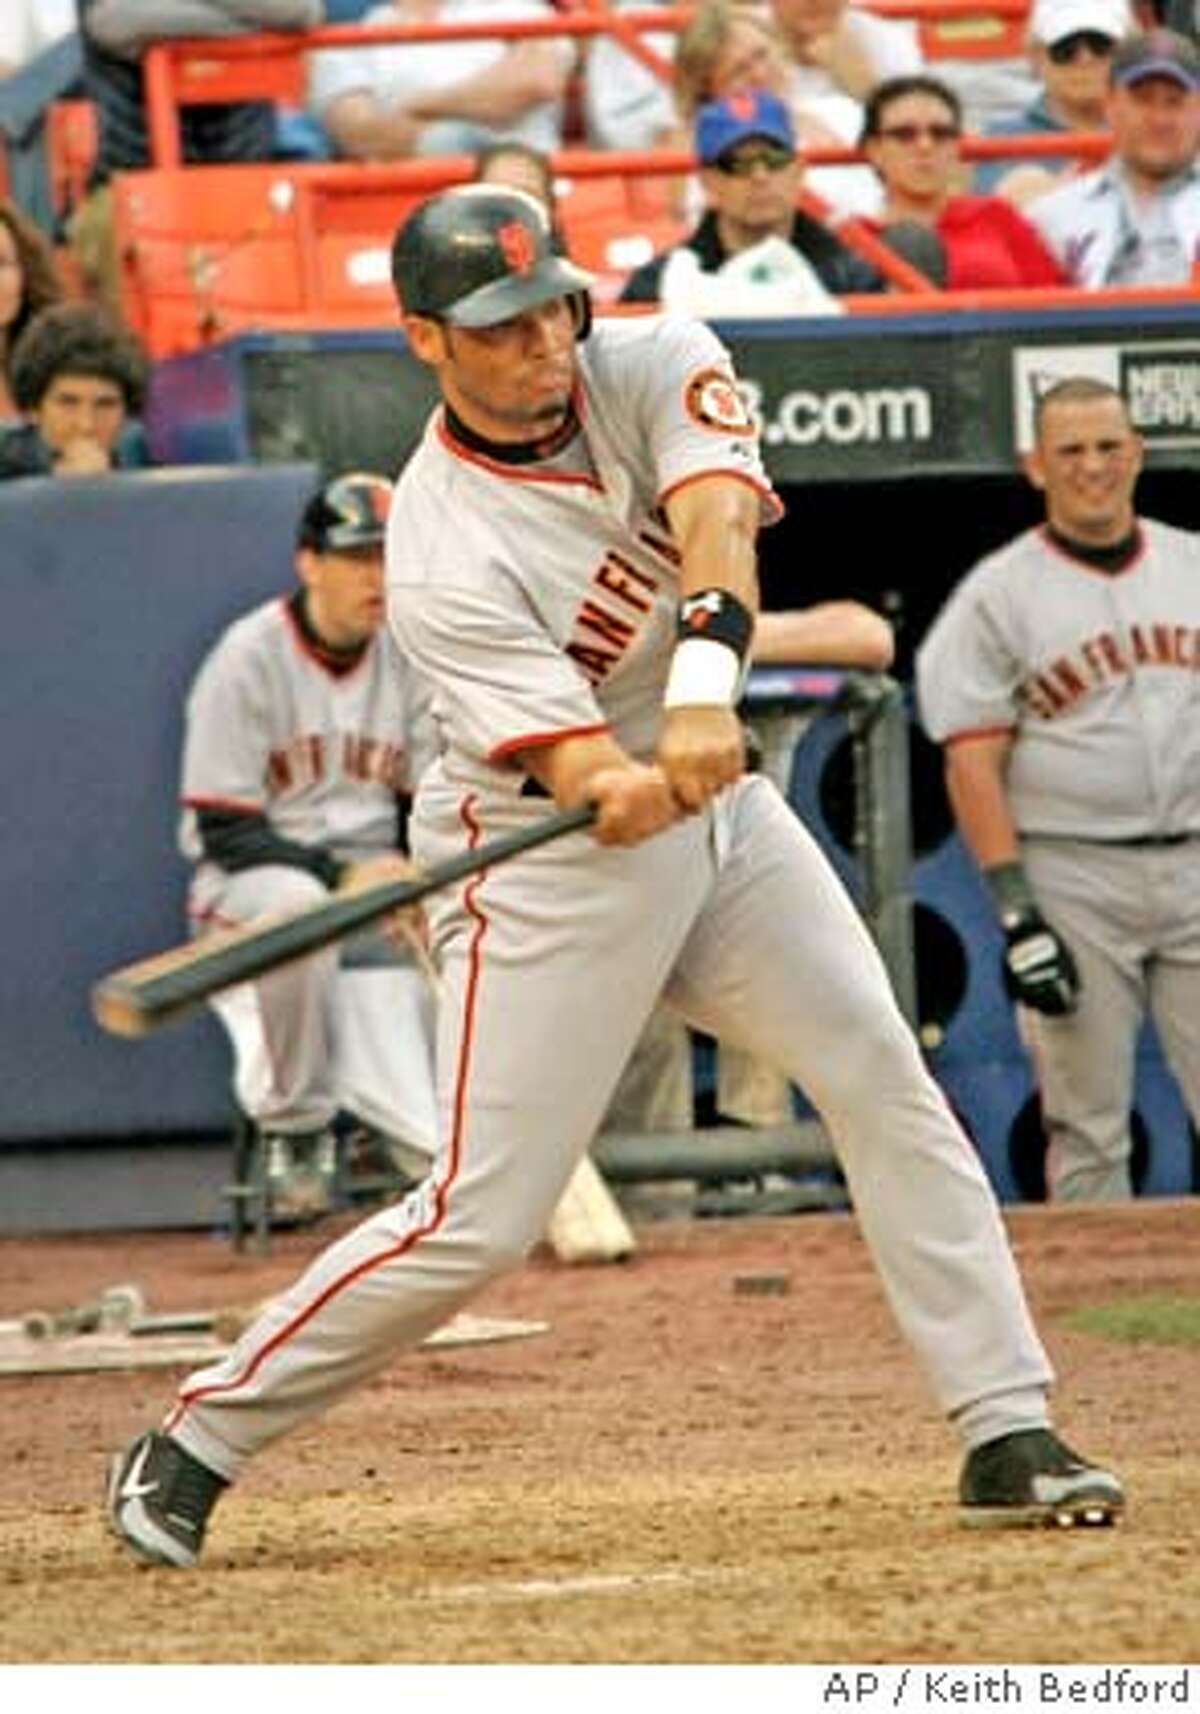 San Francisco Giants' Pedro Feliz drives in the go-ahead run off of New York Mets' relief pitcher Heath Bell in New York